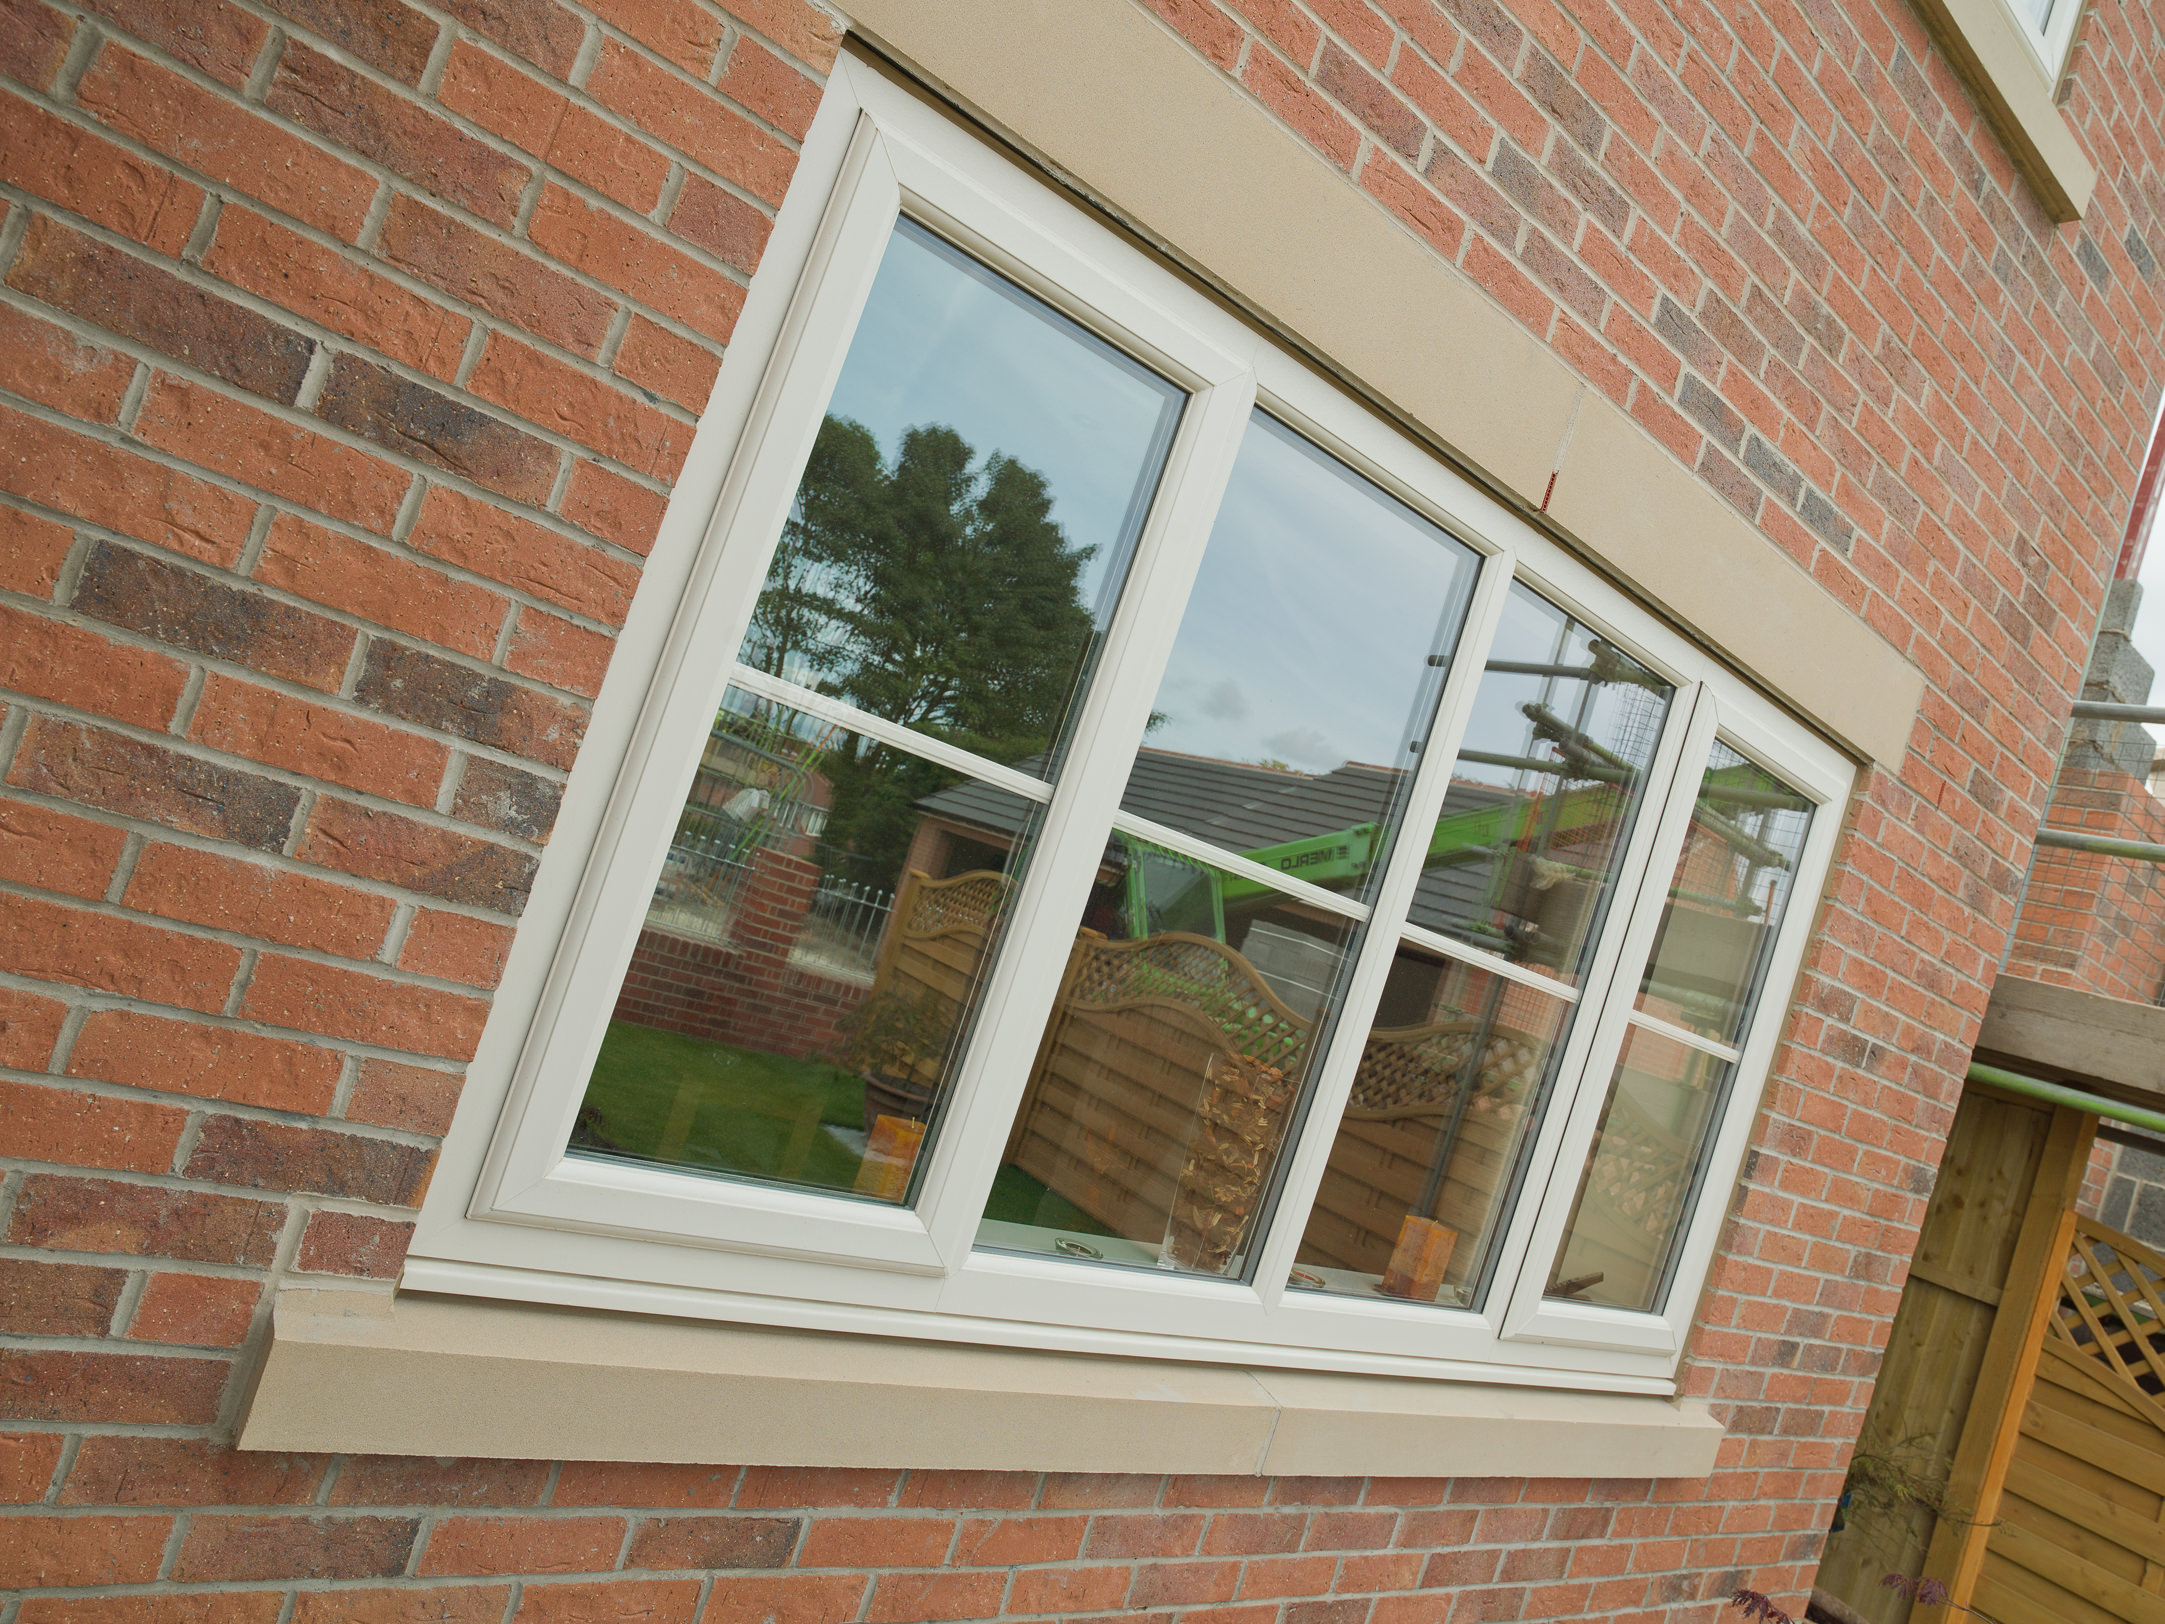 Upvc Windows Home : Upvc windows cambridge double glazed